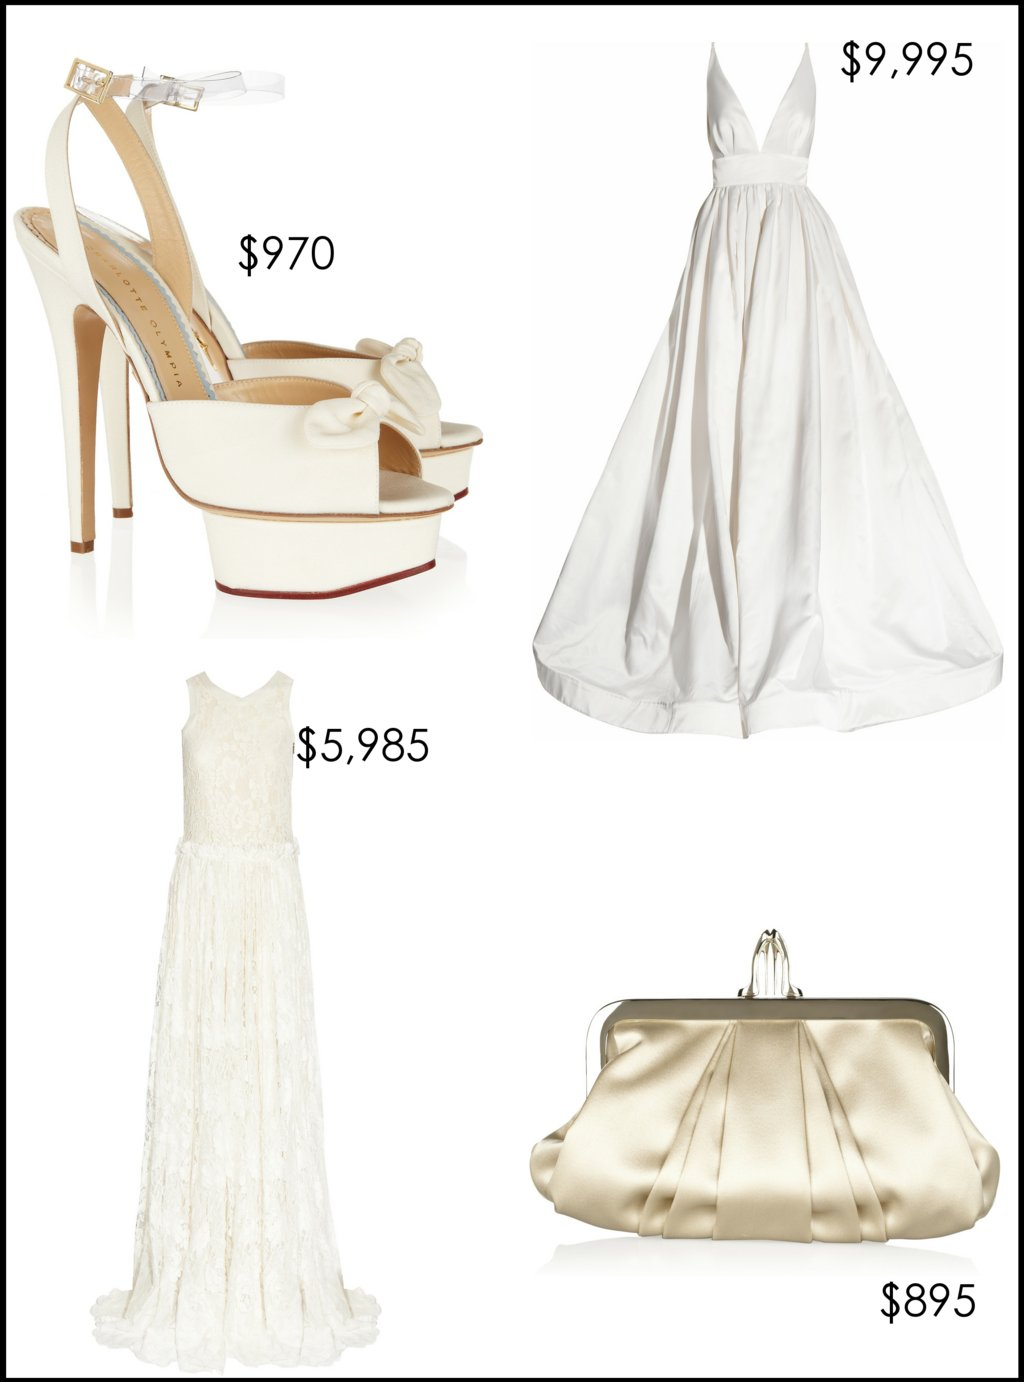 Designer-wedding-dress-bridal-heels-clutch-net-a-porter.full